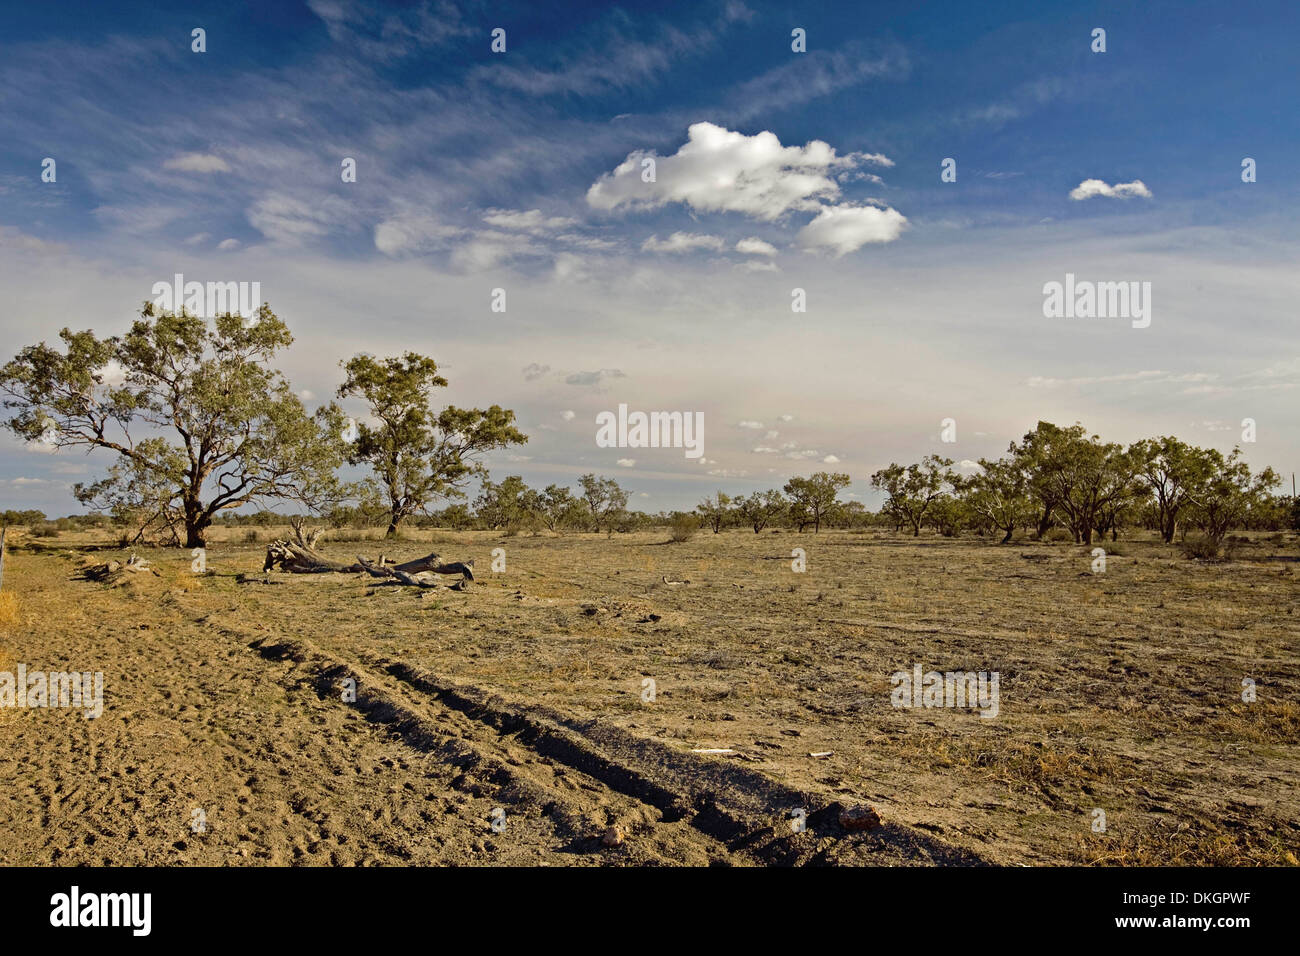 Arid Australian outback landscape during drought with barren brown plains, sparse vegetation, blue sky and white clouds - Stock Image